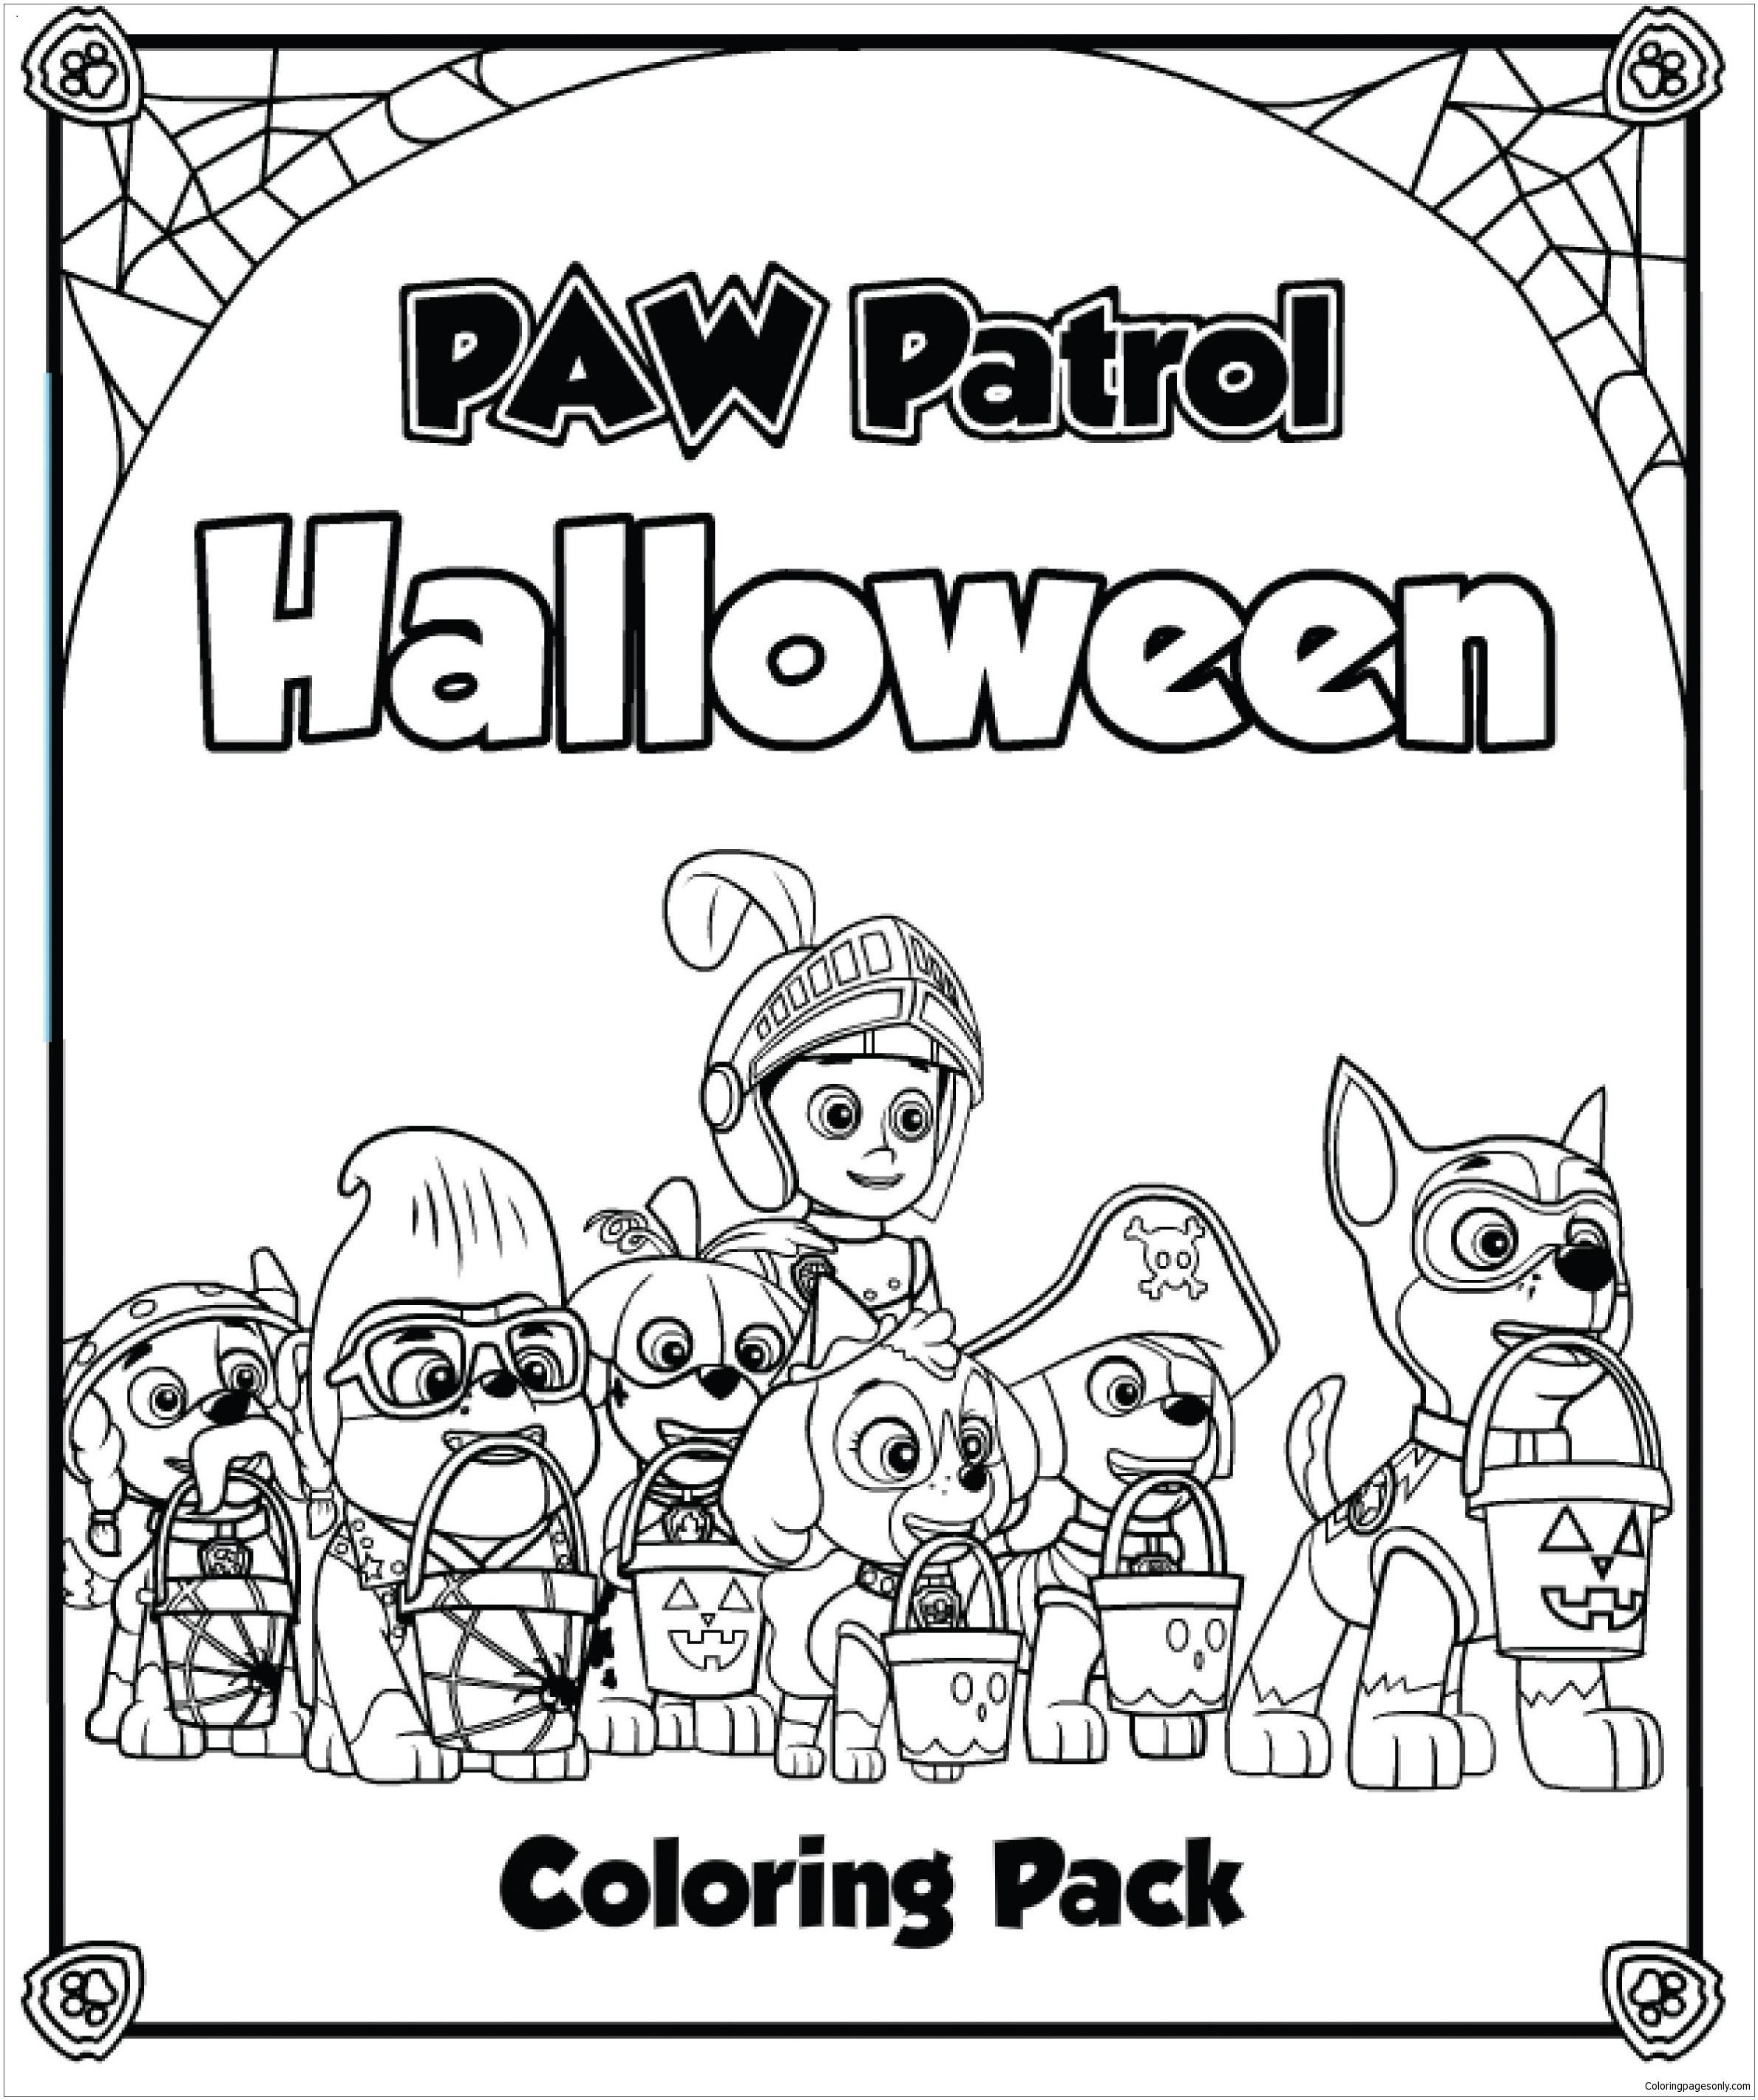 Paw Patrol Halloween Coloring Pages at GetColorings.com ...